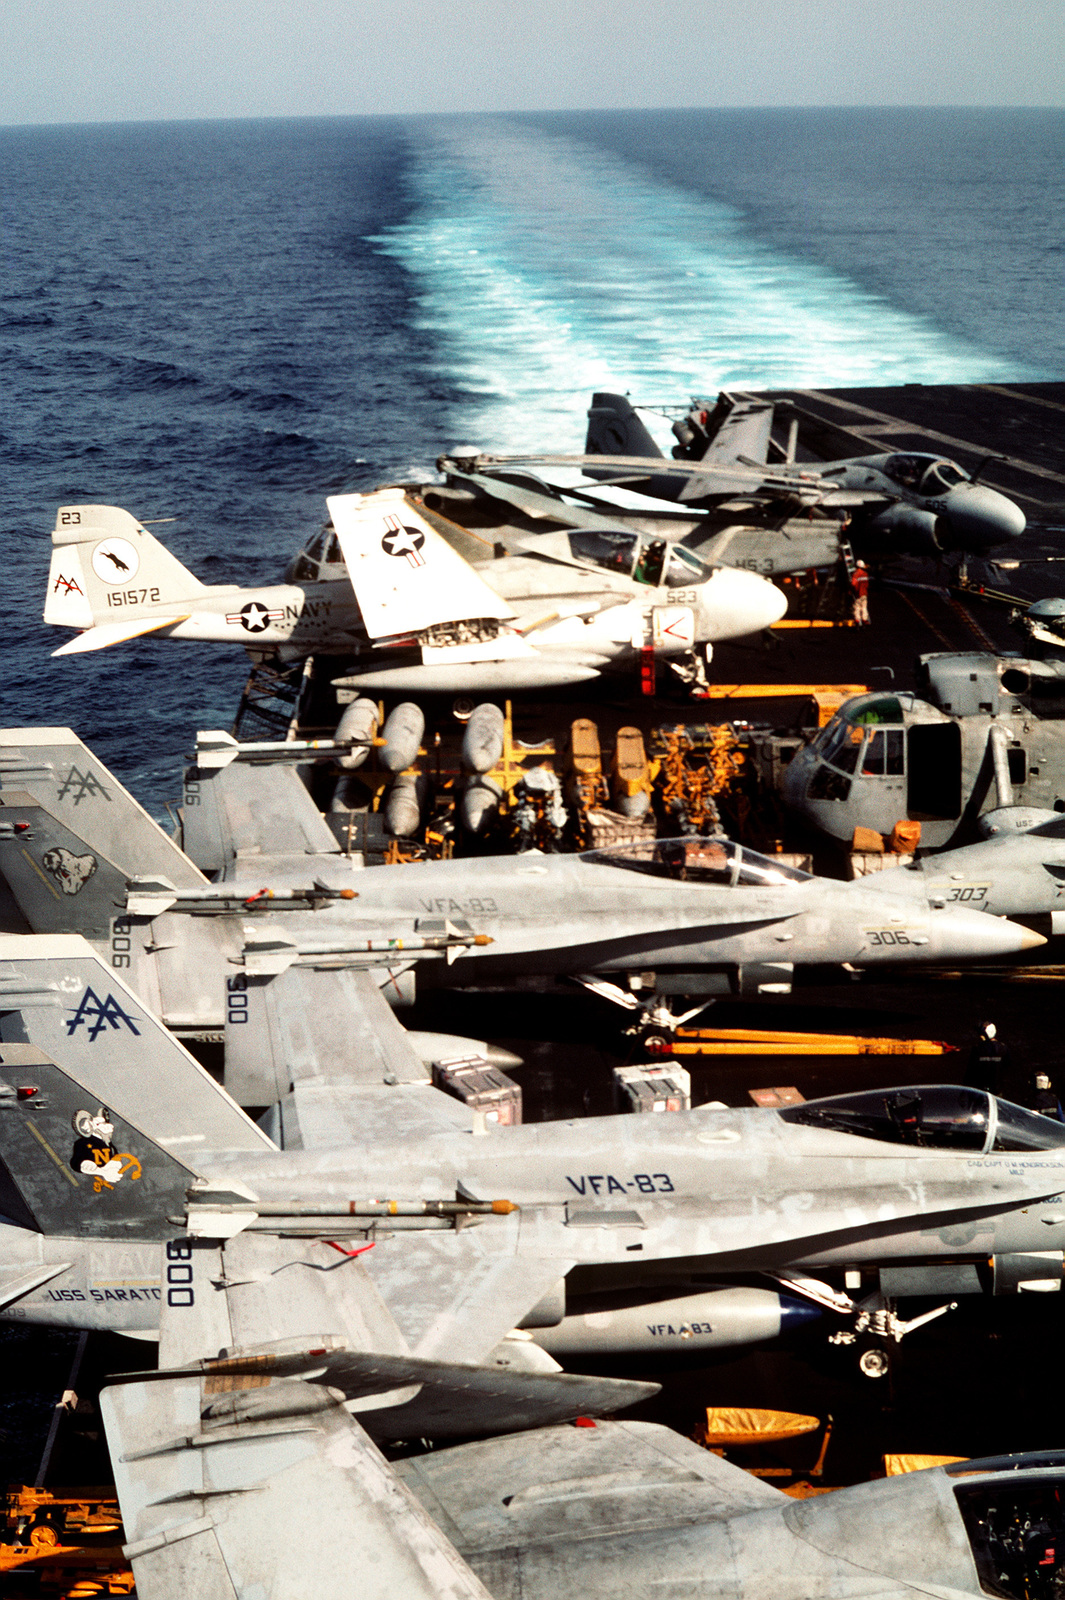 Strike Fighter Squadron 83 (VFA-83) F/A-18A Hornet aircraft armed with AIM-9 Sidewinder missiles, Helicopter Anti-submarine Squadron 3 (HS-3) SH-3H Sea King helicopters, and A-6E Intruder aircraft line the flight deck of the aircraft carrier USS SARATOGA (CV-60) as the vessel is underway in support of Operation Desert Shield